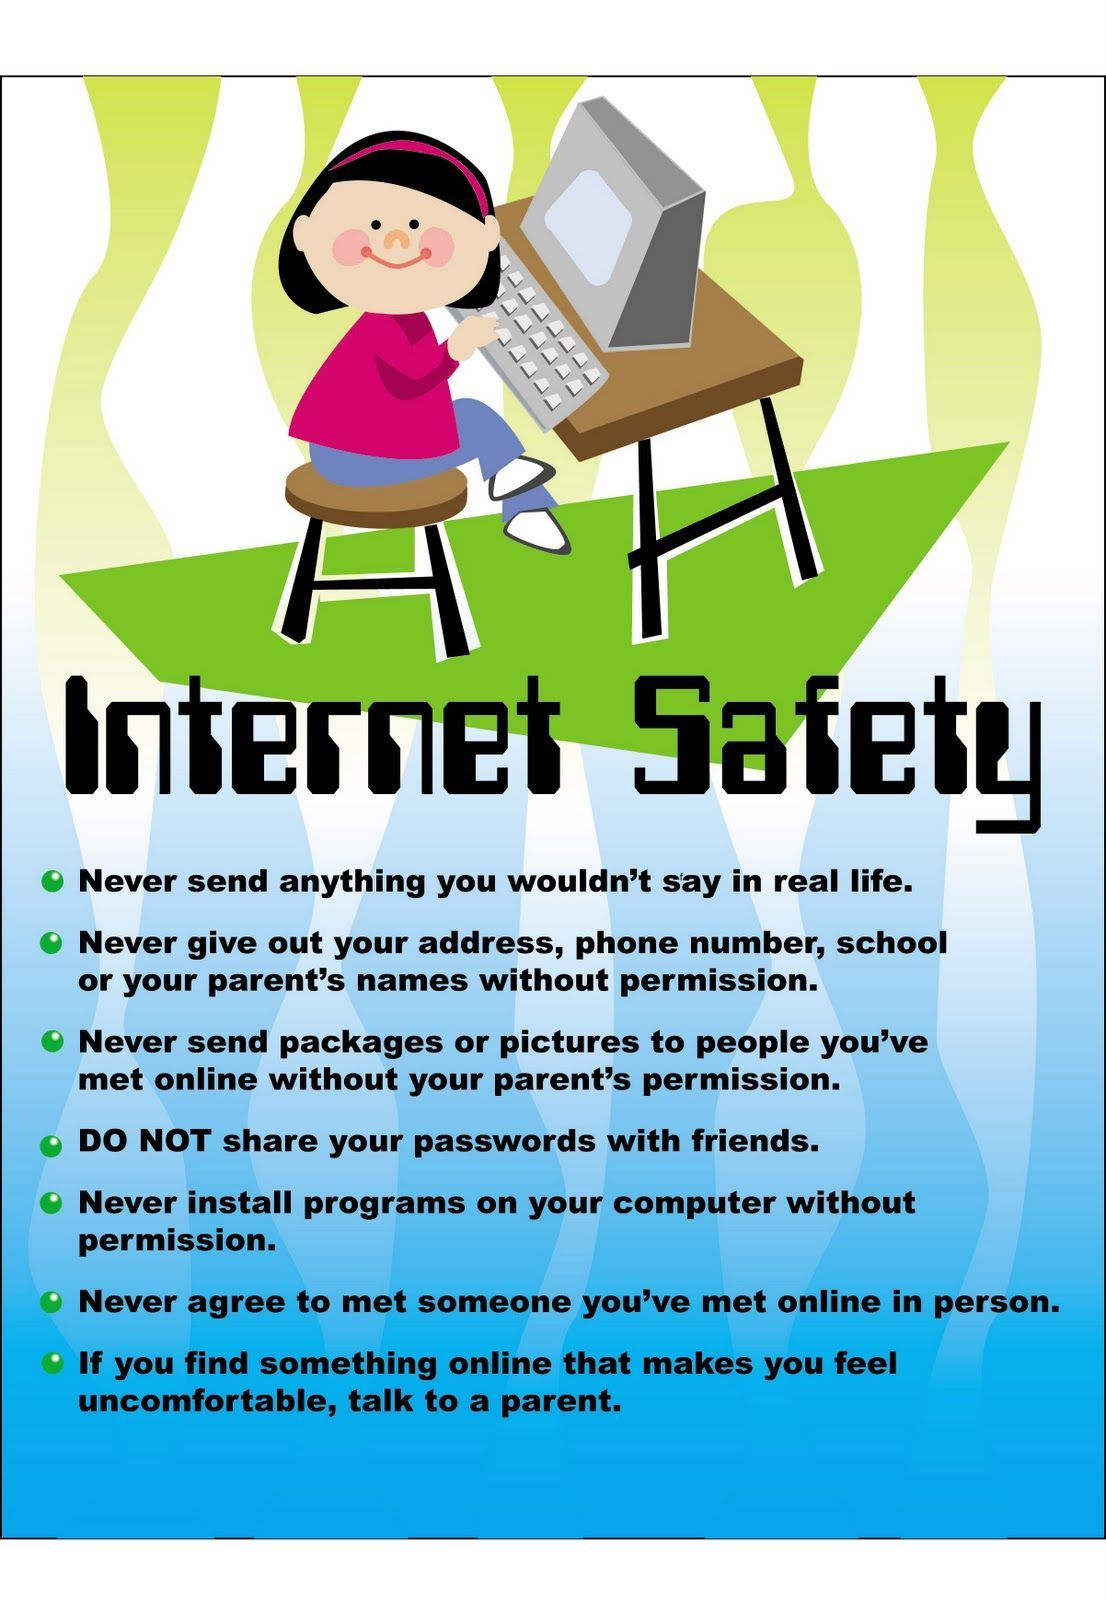 New Malware Defeats Air Gap To Transmit Data Via Led Light In 2020 Internet Safety For Kids Online Safety Safe Internet